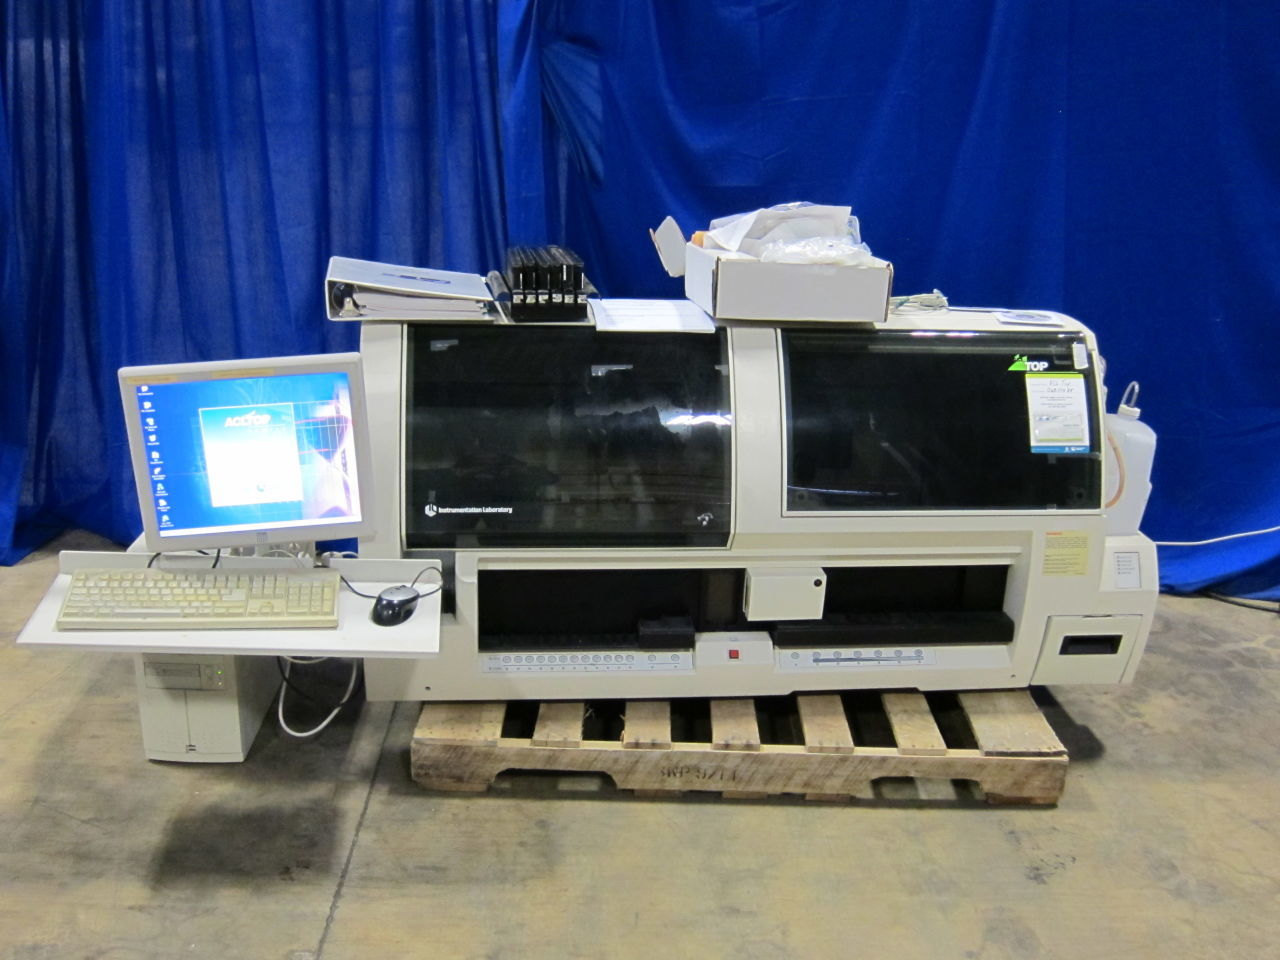 INSTRUMENTATION LABORATORIES ACL Top Coagulation Analyzer